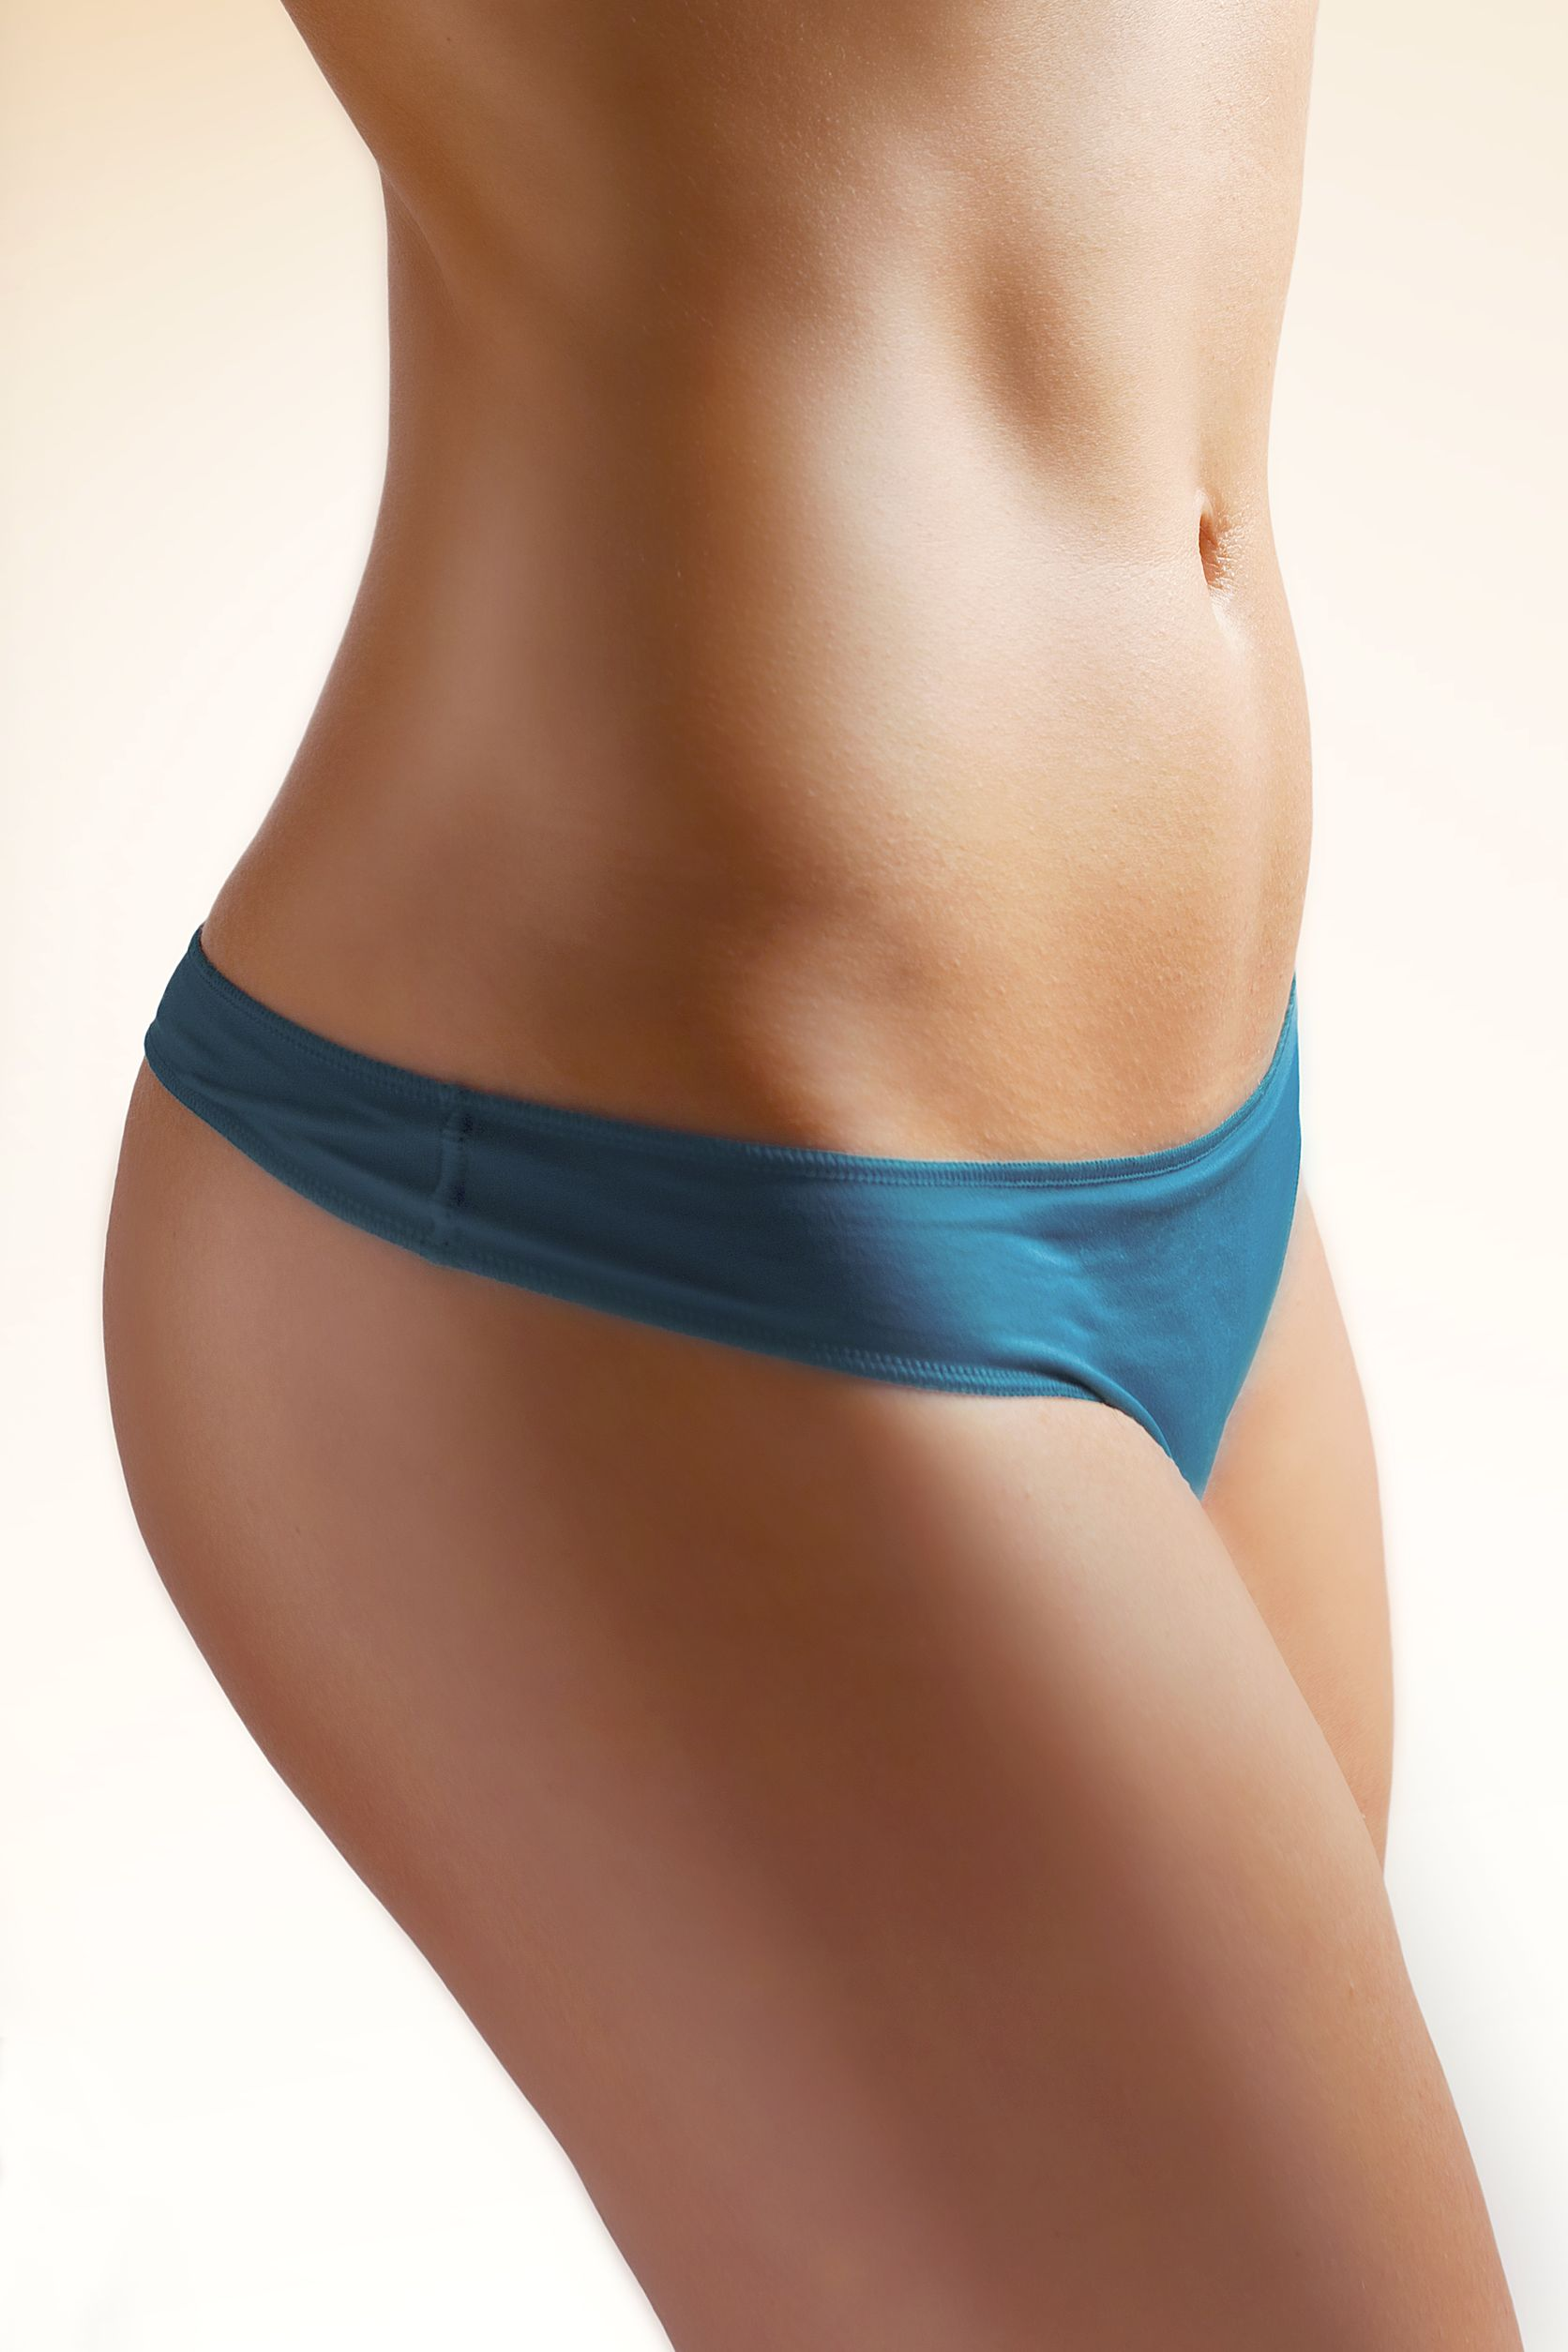 Less known cosmetic procedure-Tummy Tuck without drains